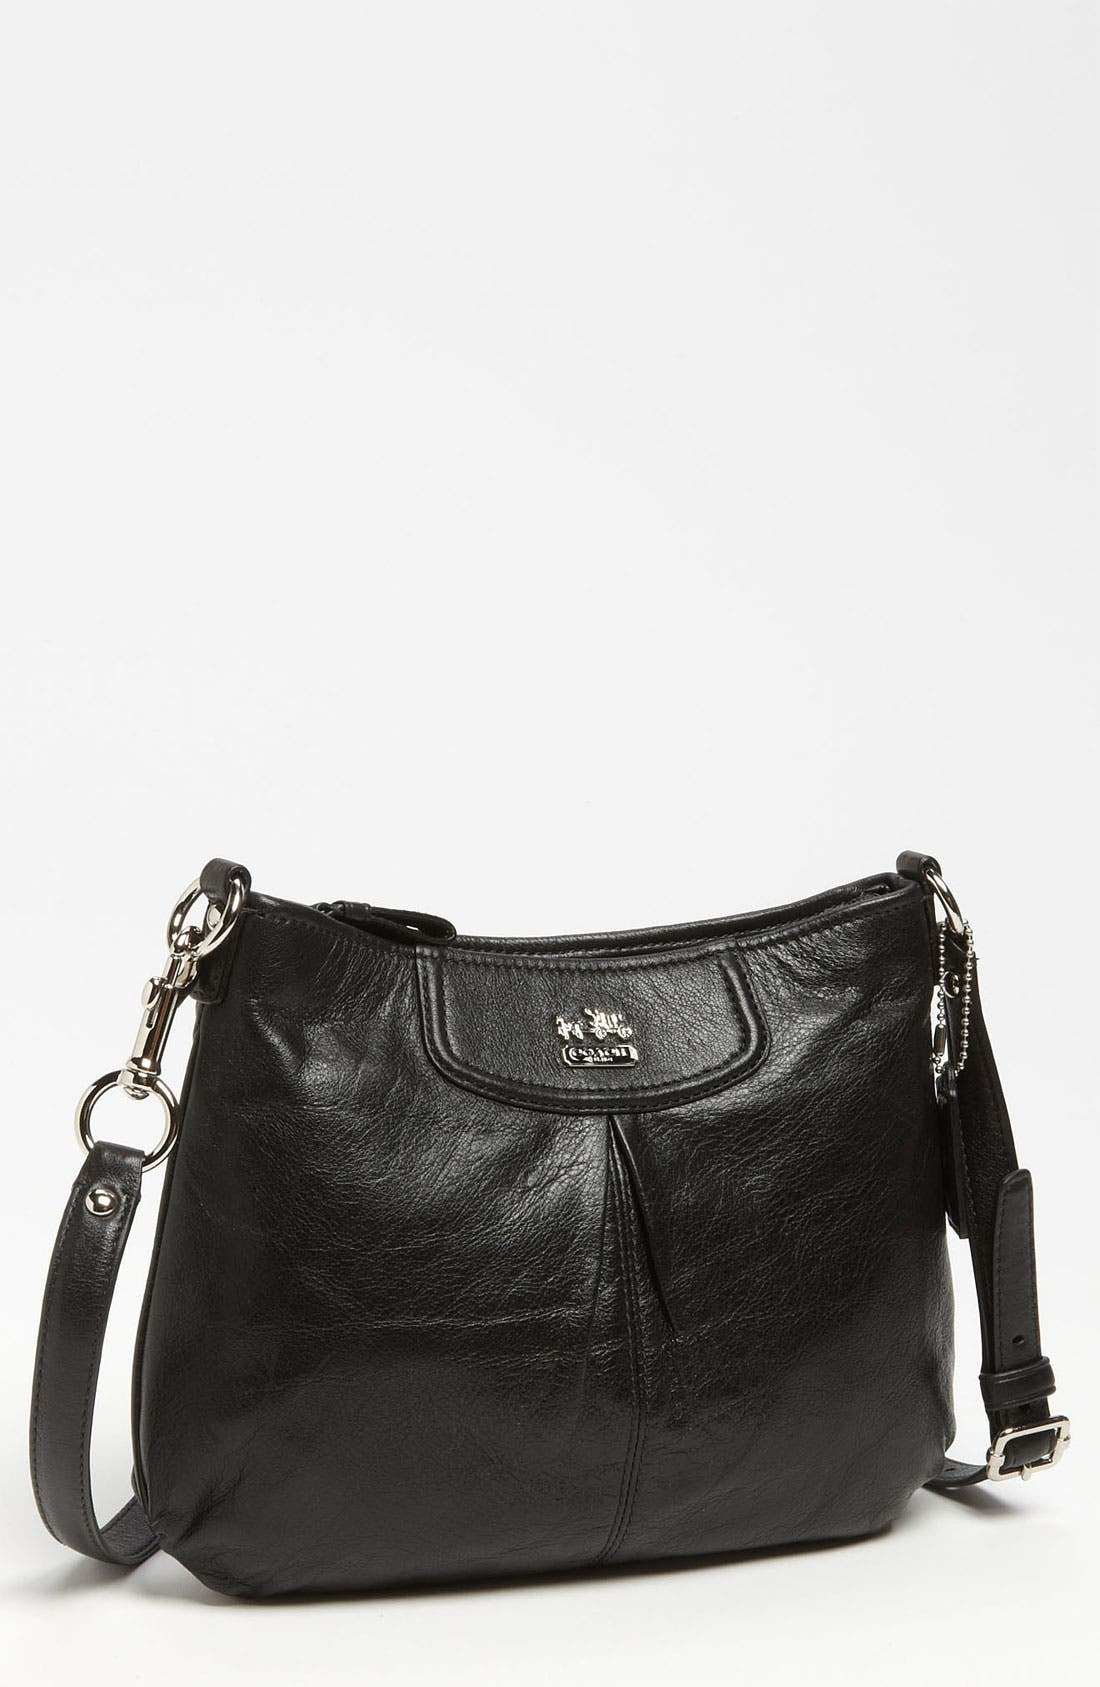 Main Image - COACH 'Madison - Swingpack' Leather Crossbody Bag